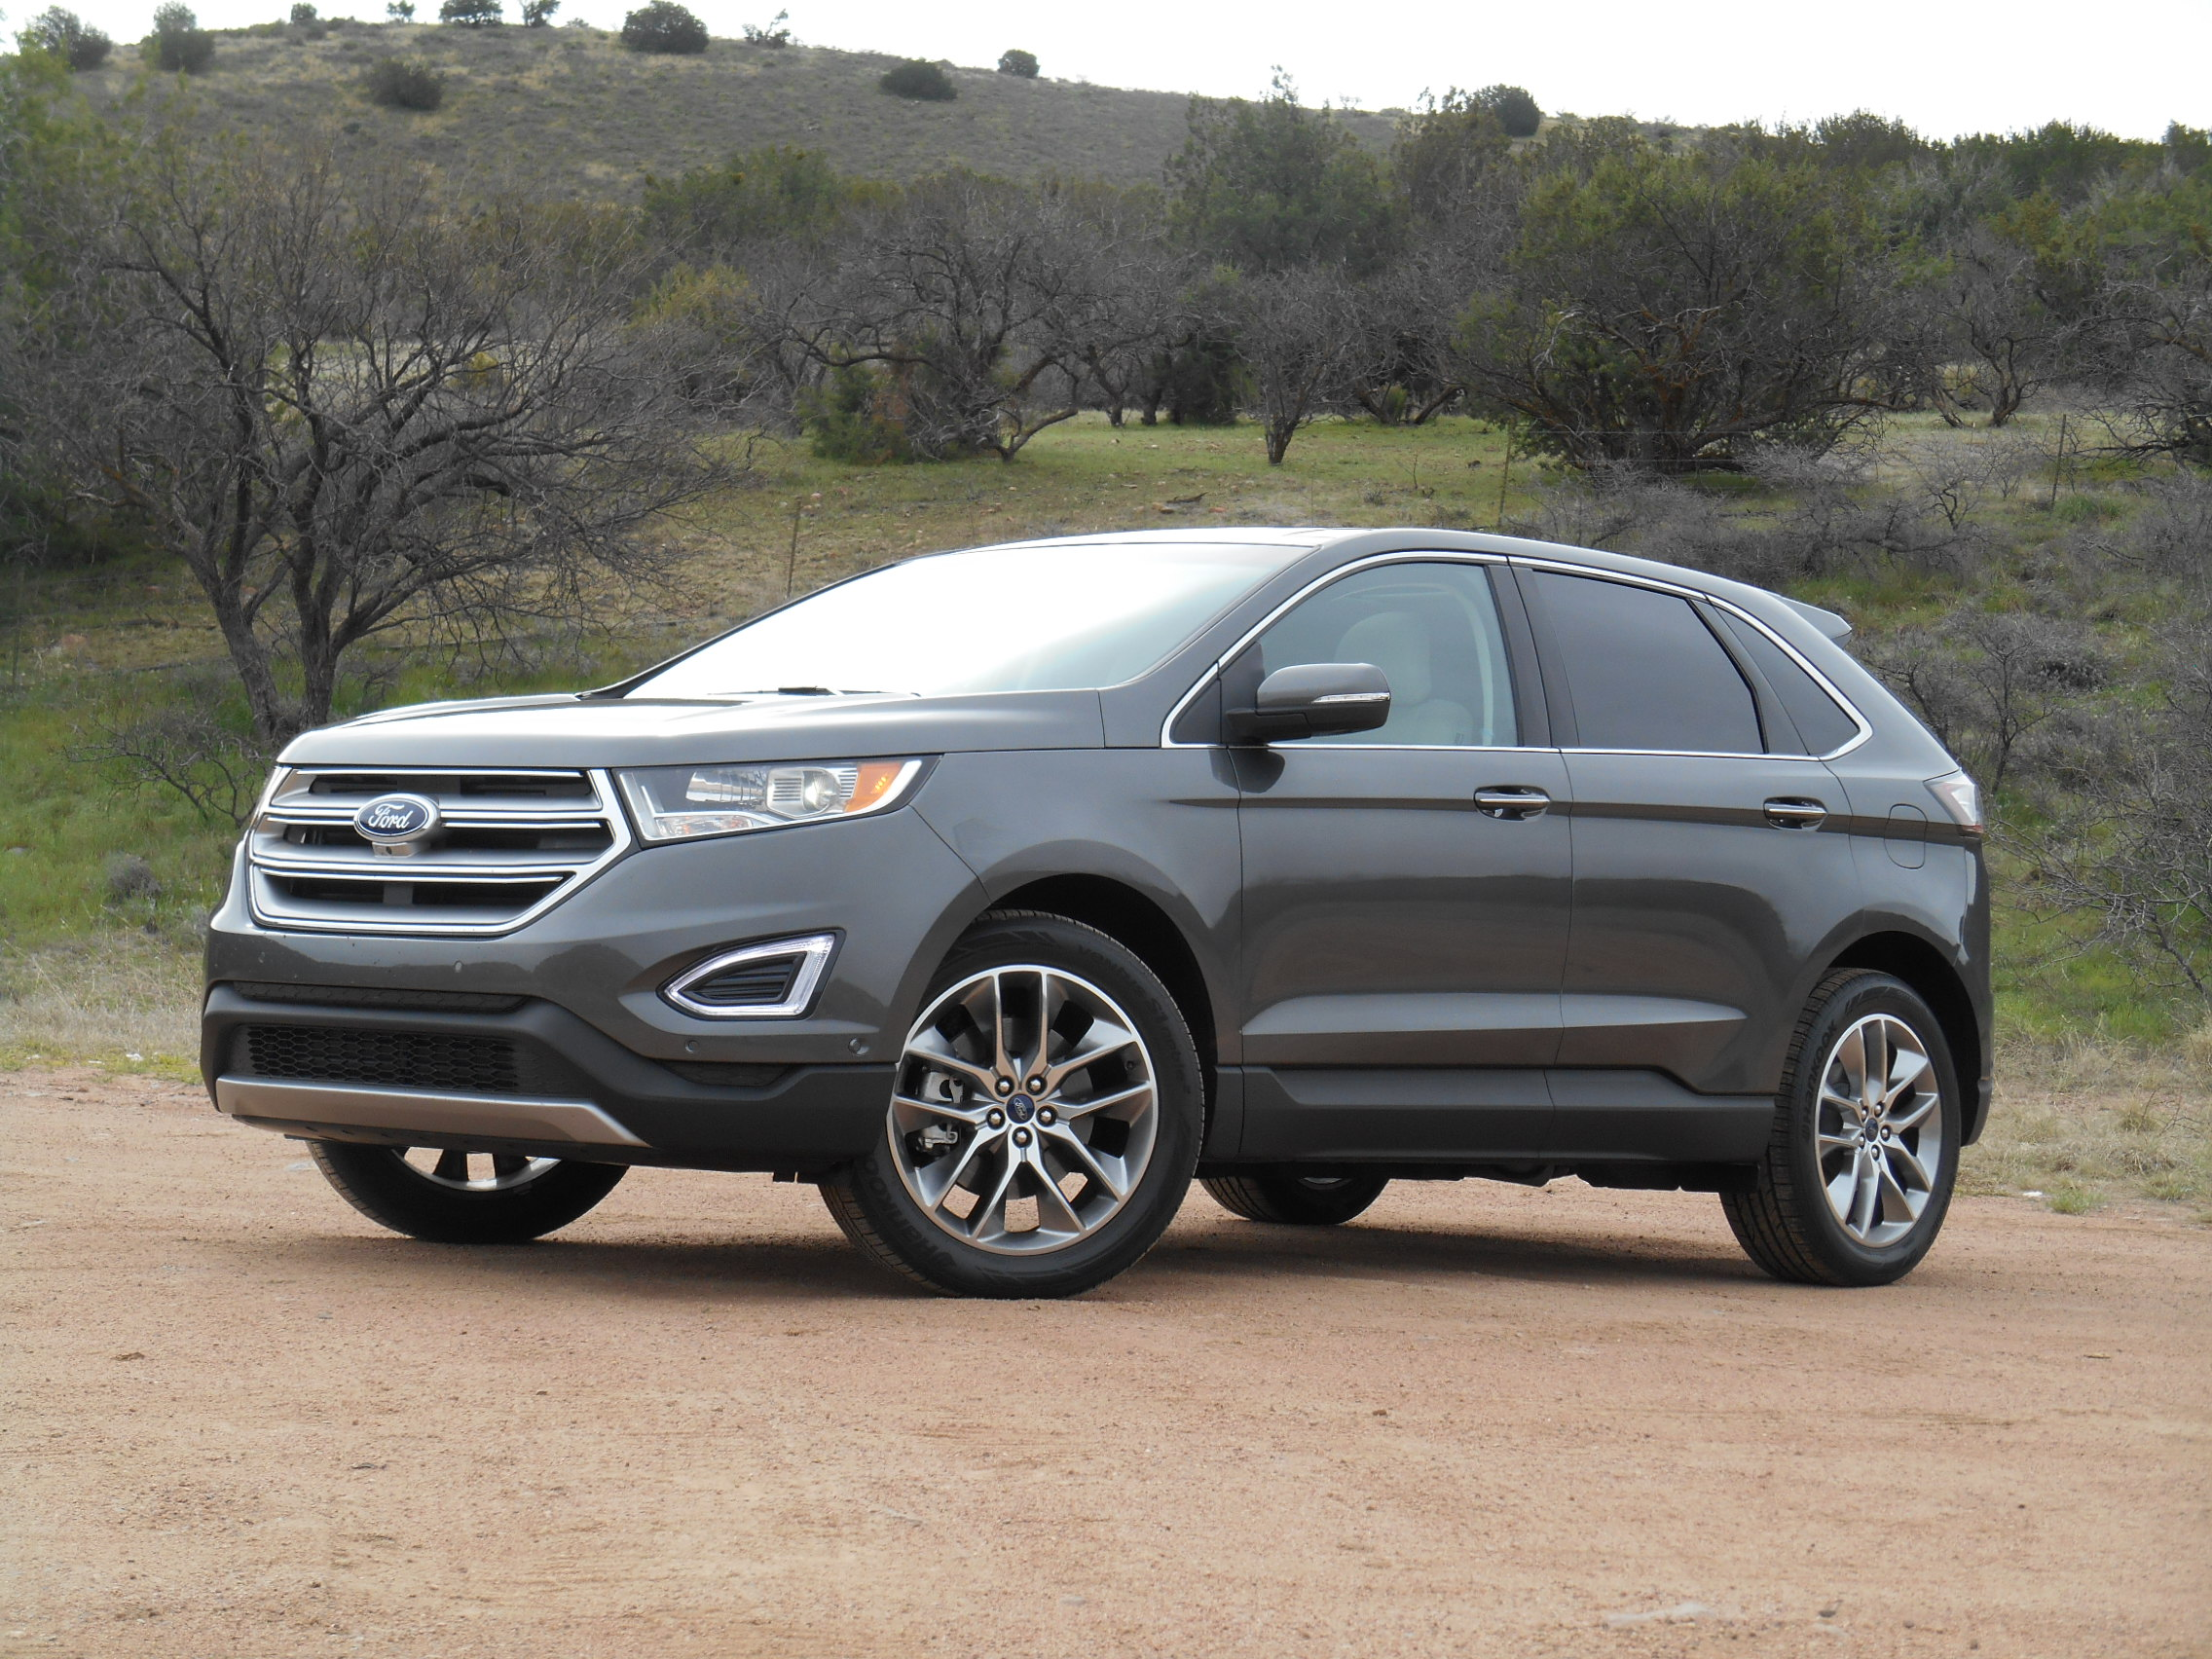 first spin 2015 ford edge the daily drive consumer guide the daily drive consumer guide. Black Bedroom Furniture Sets. Home Design Ideas